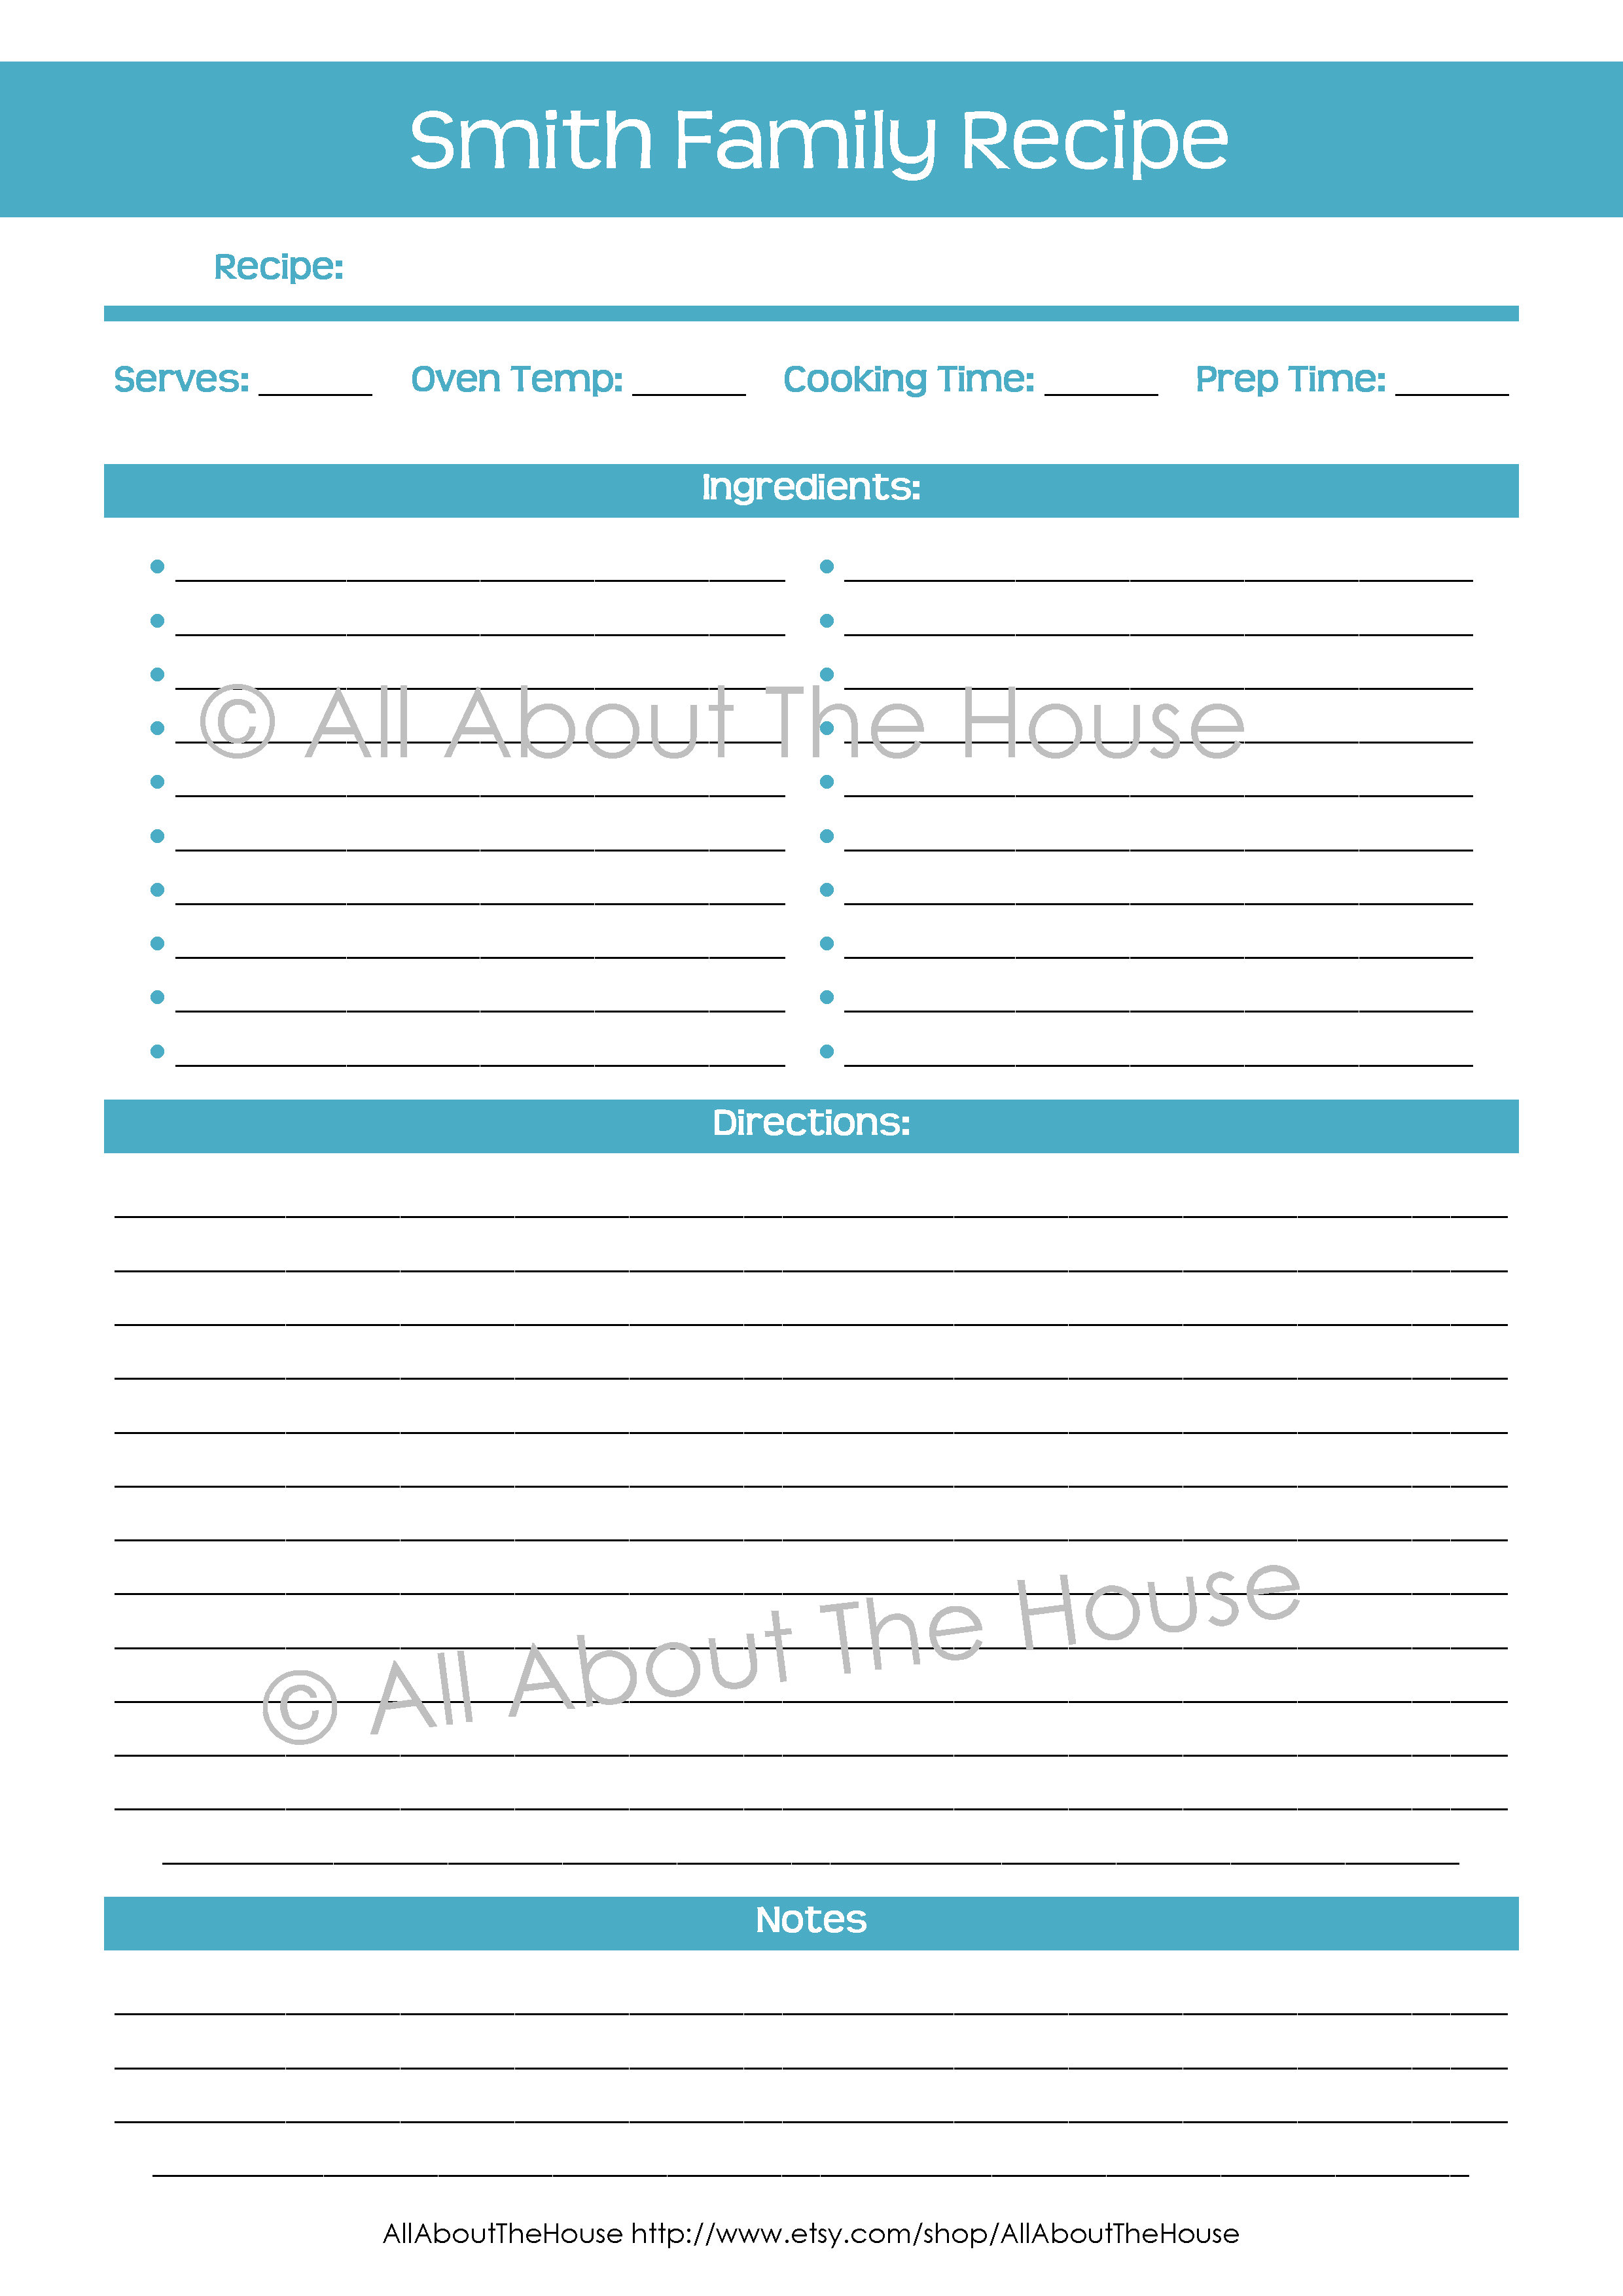 Make Your Own Personalised Printable Recipe Binder! - AllAboutTheHouse